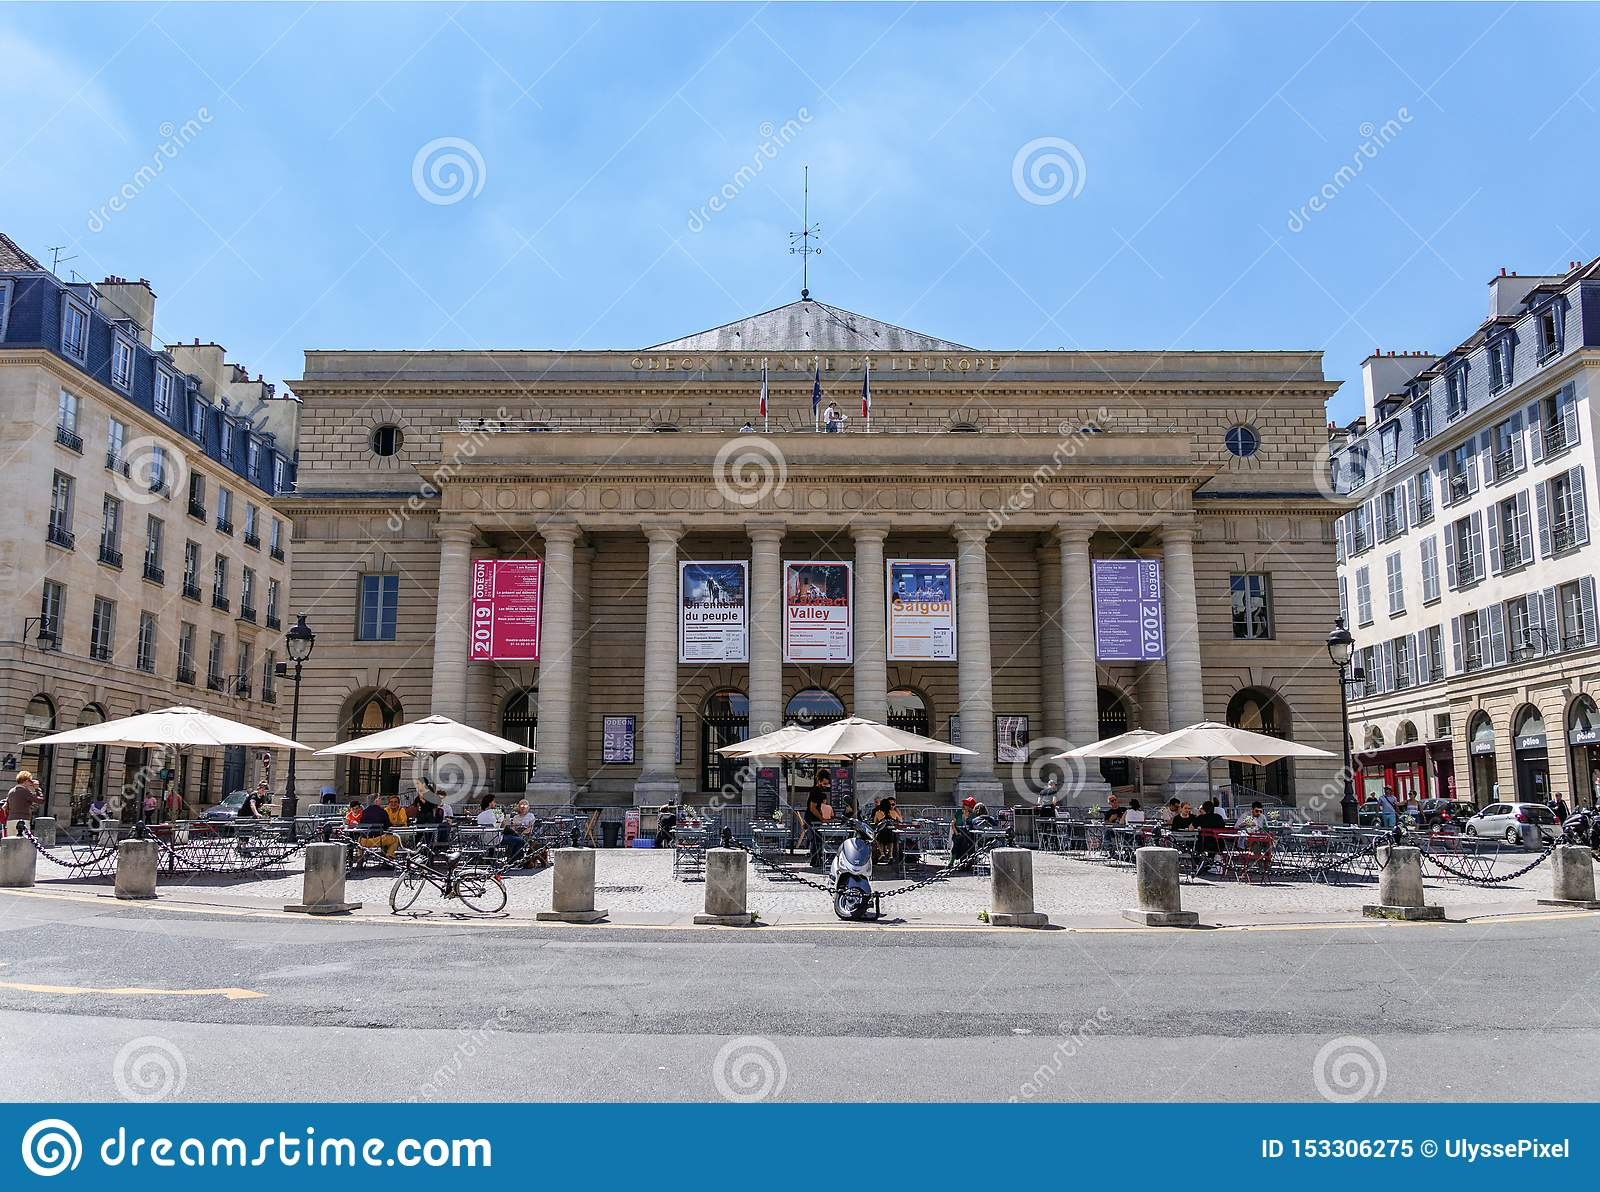 Theater de l 'Odeon im 6. Arrondissement von Paris